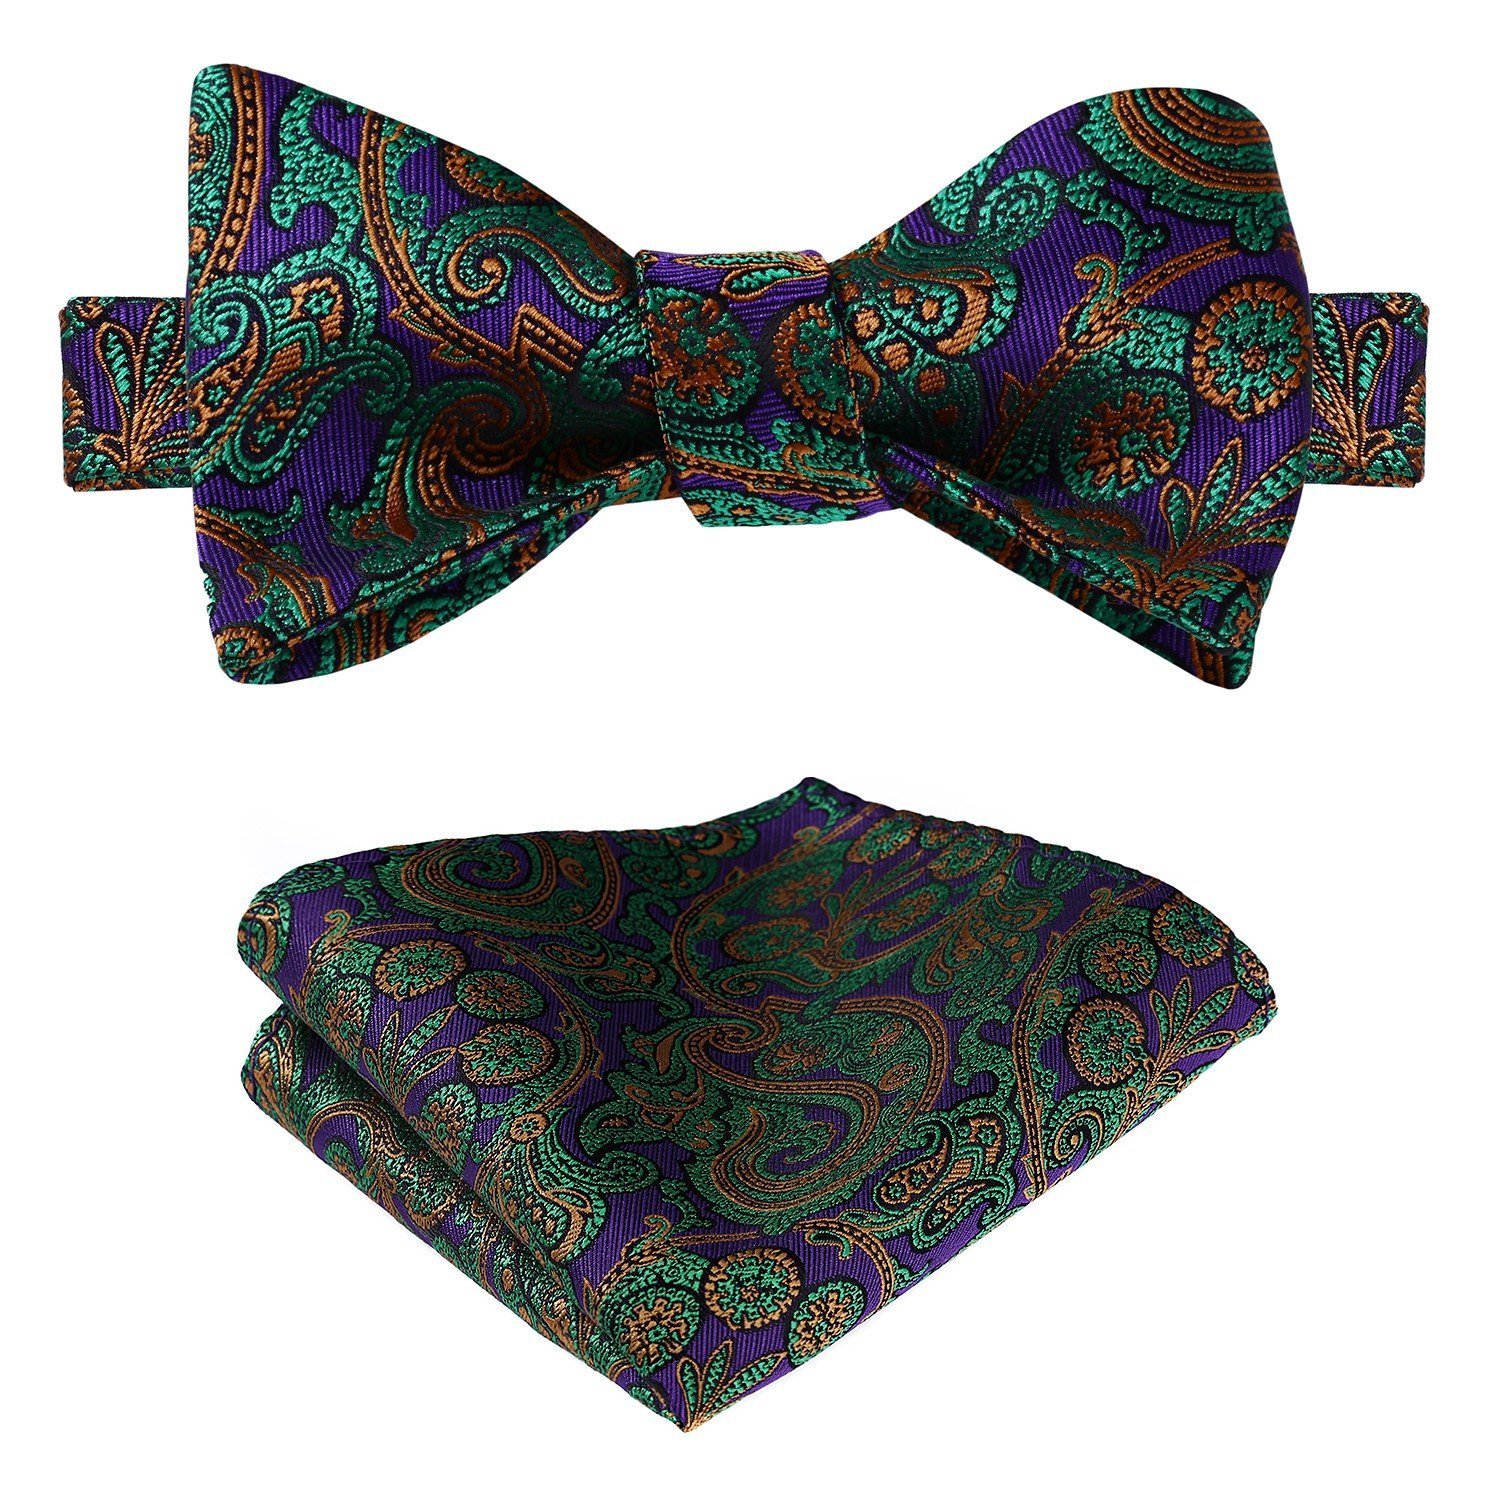 HISDERN Men's Paisley Floral Jacquard Wedding Party Self Bow Tie & Pocket Square Set BF431BS